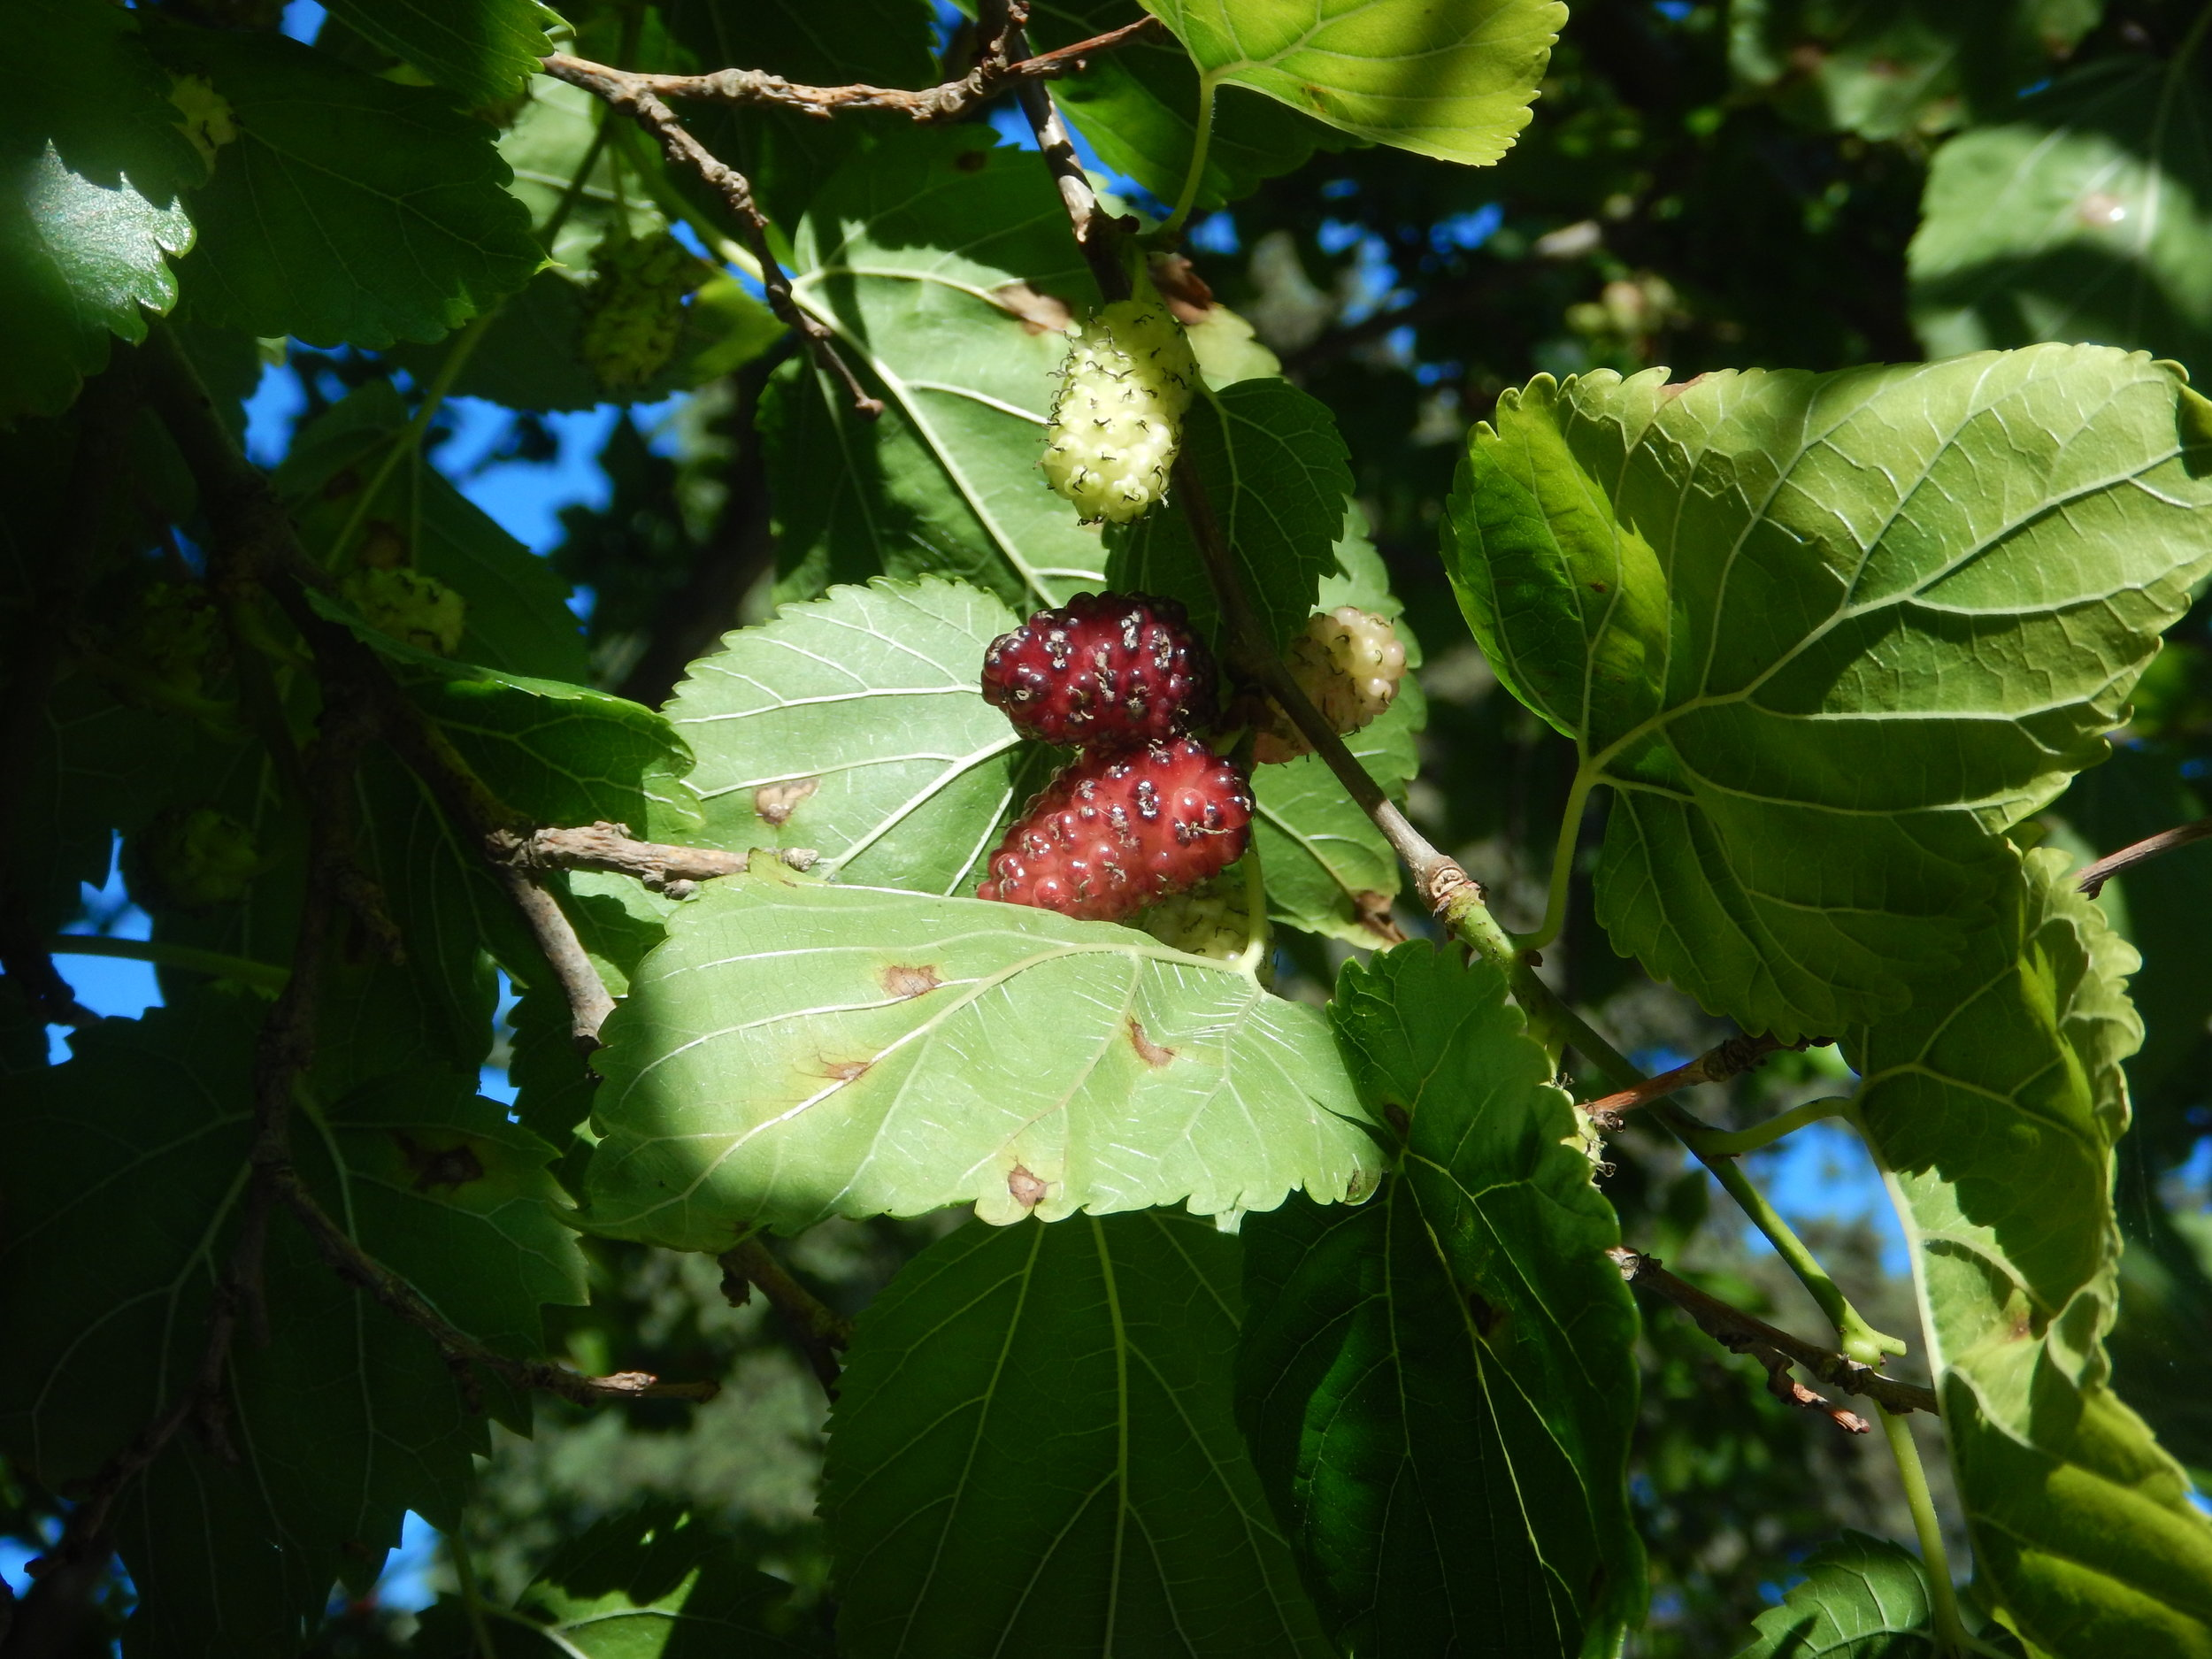 Berries, the tree looks like a mulberry, but I didn't get purple fingers or tongue after picking and eating the ripe ones.